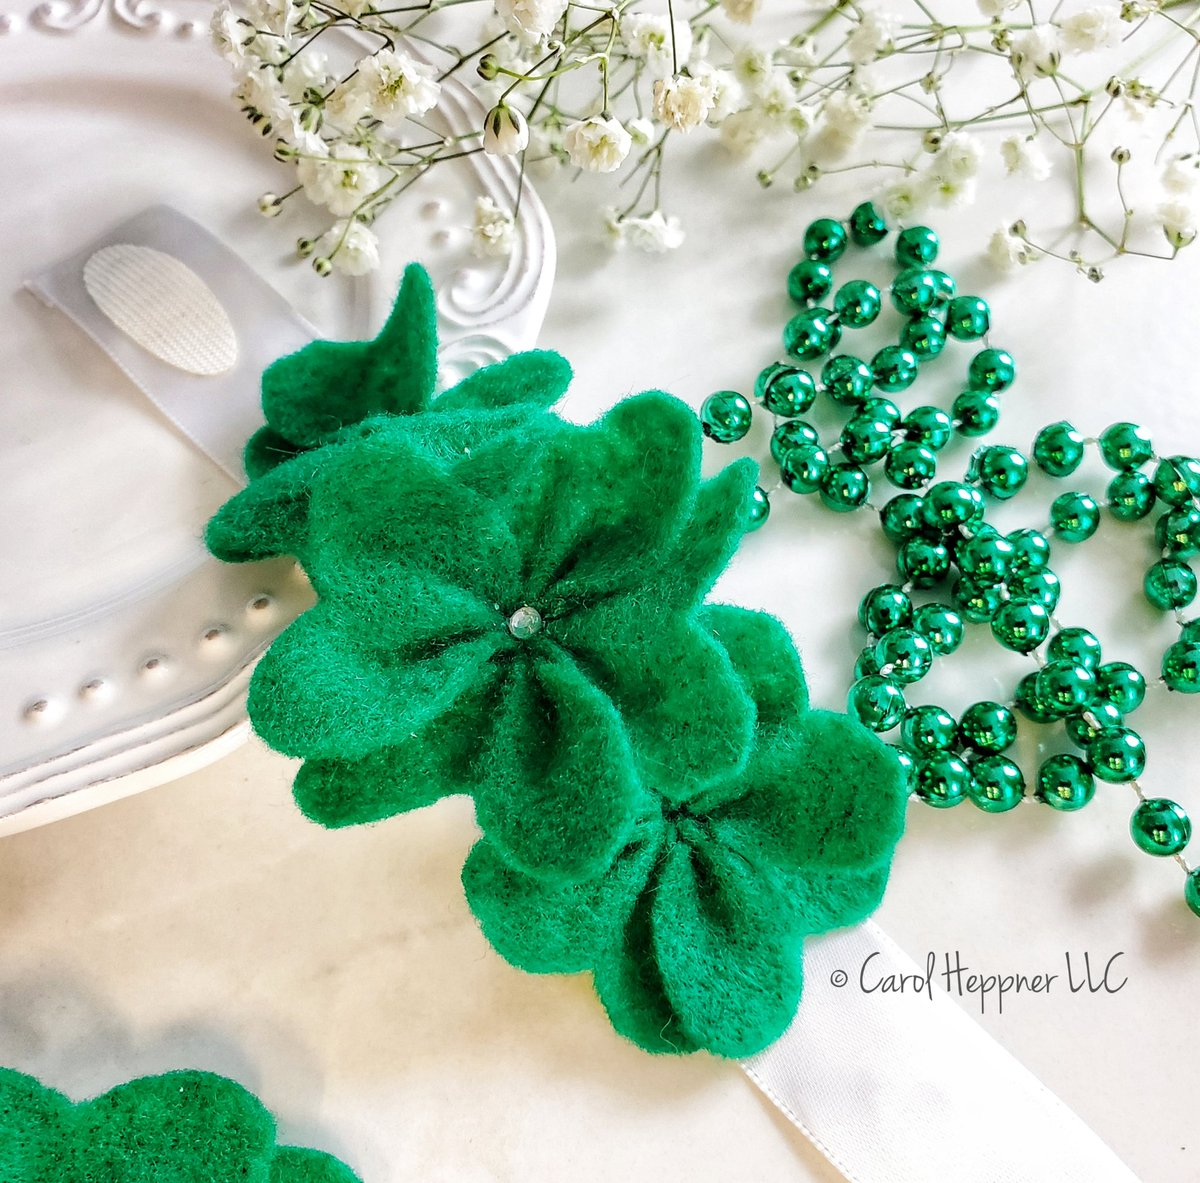 Today on the blog: 🍀 Felt-Shamrock Bracelet for St. Pat's Day.  This cute bracelet is fun to make and wear to celebrate the day. Grab the free instructions . #ad #mondaythoughts #craft #handmade #familyfun #StPatricksDay